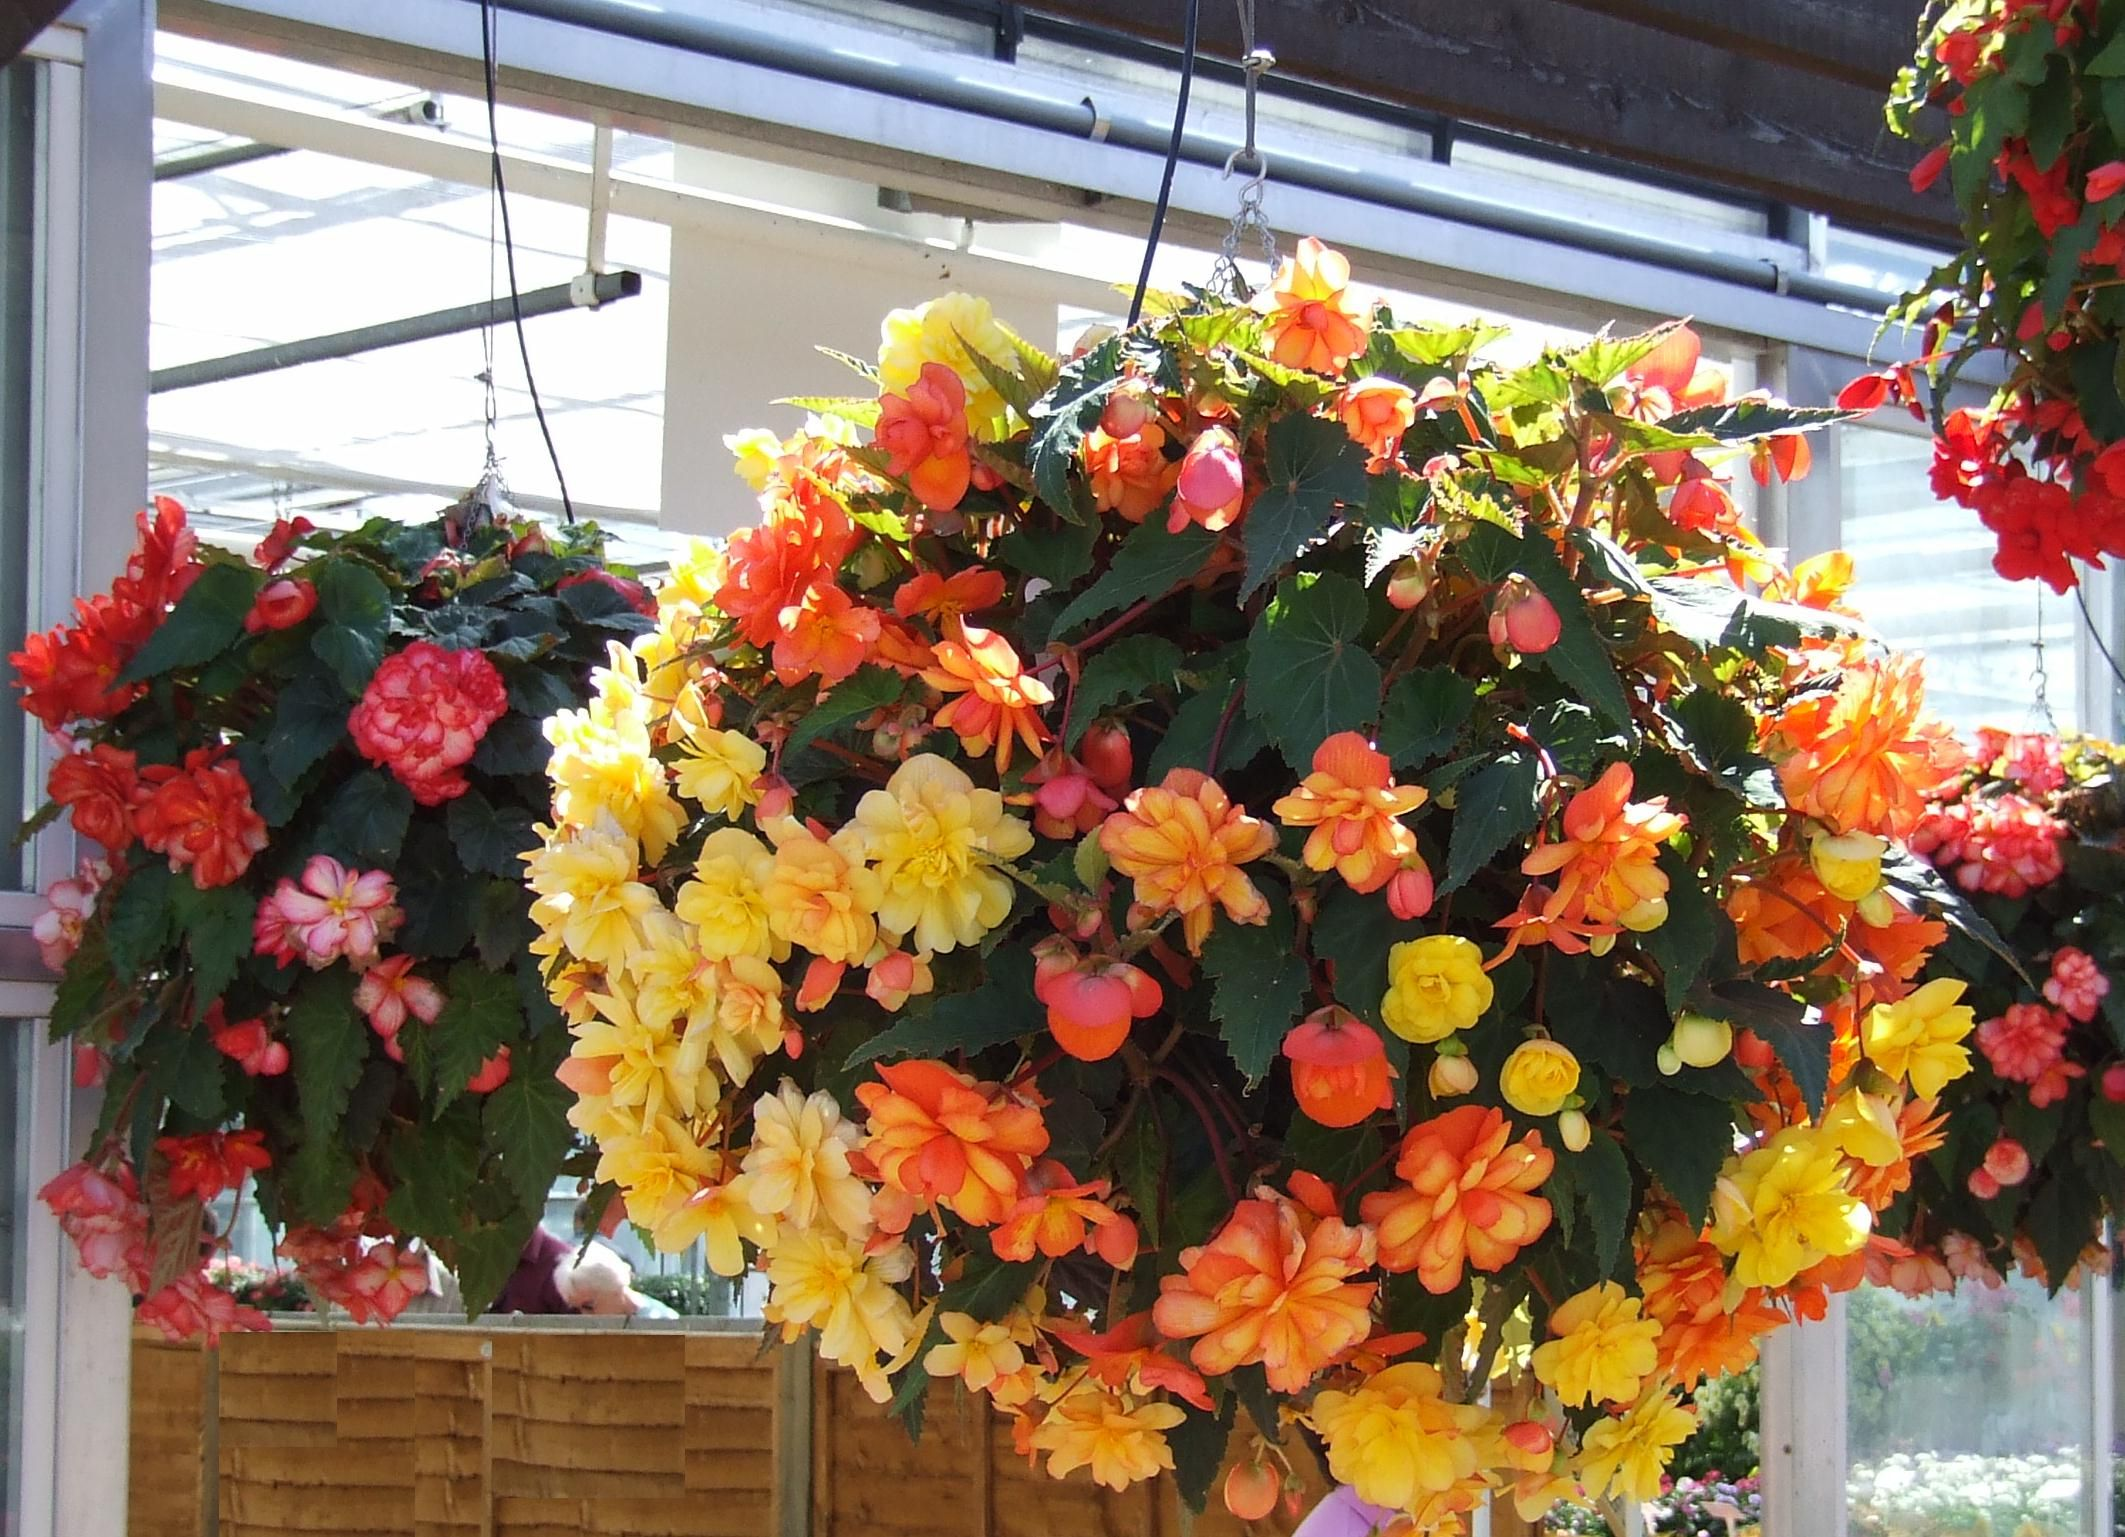 Growing Hanging Flower Baskets : Easy to grow hanging indoor flowers begonias are so